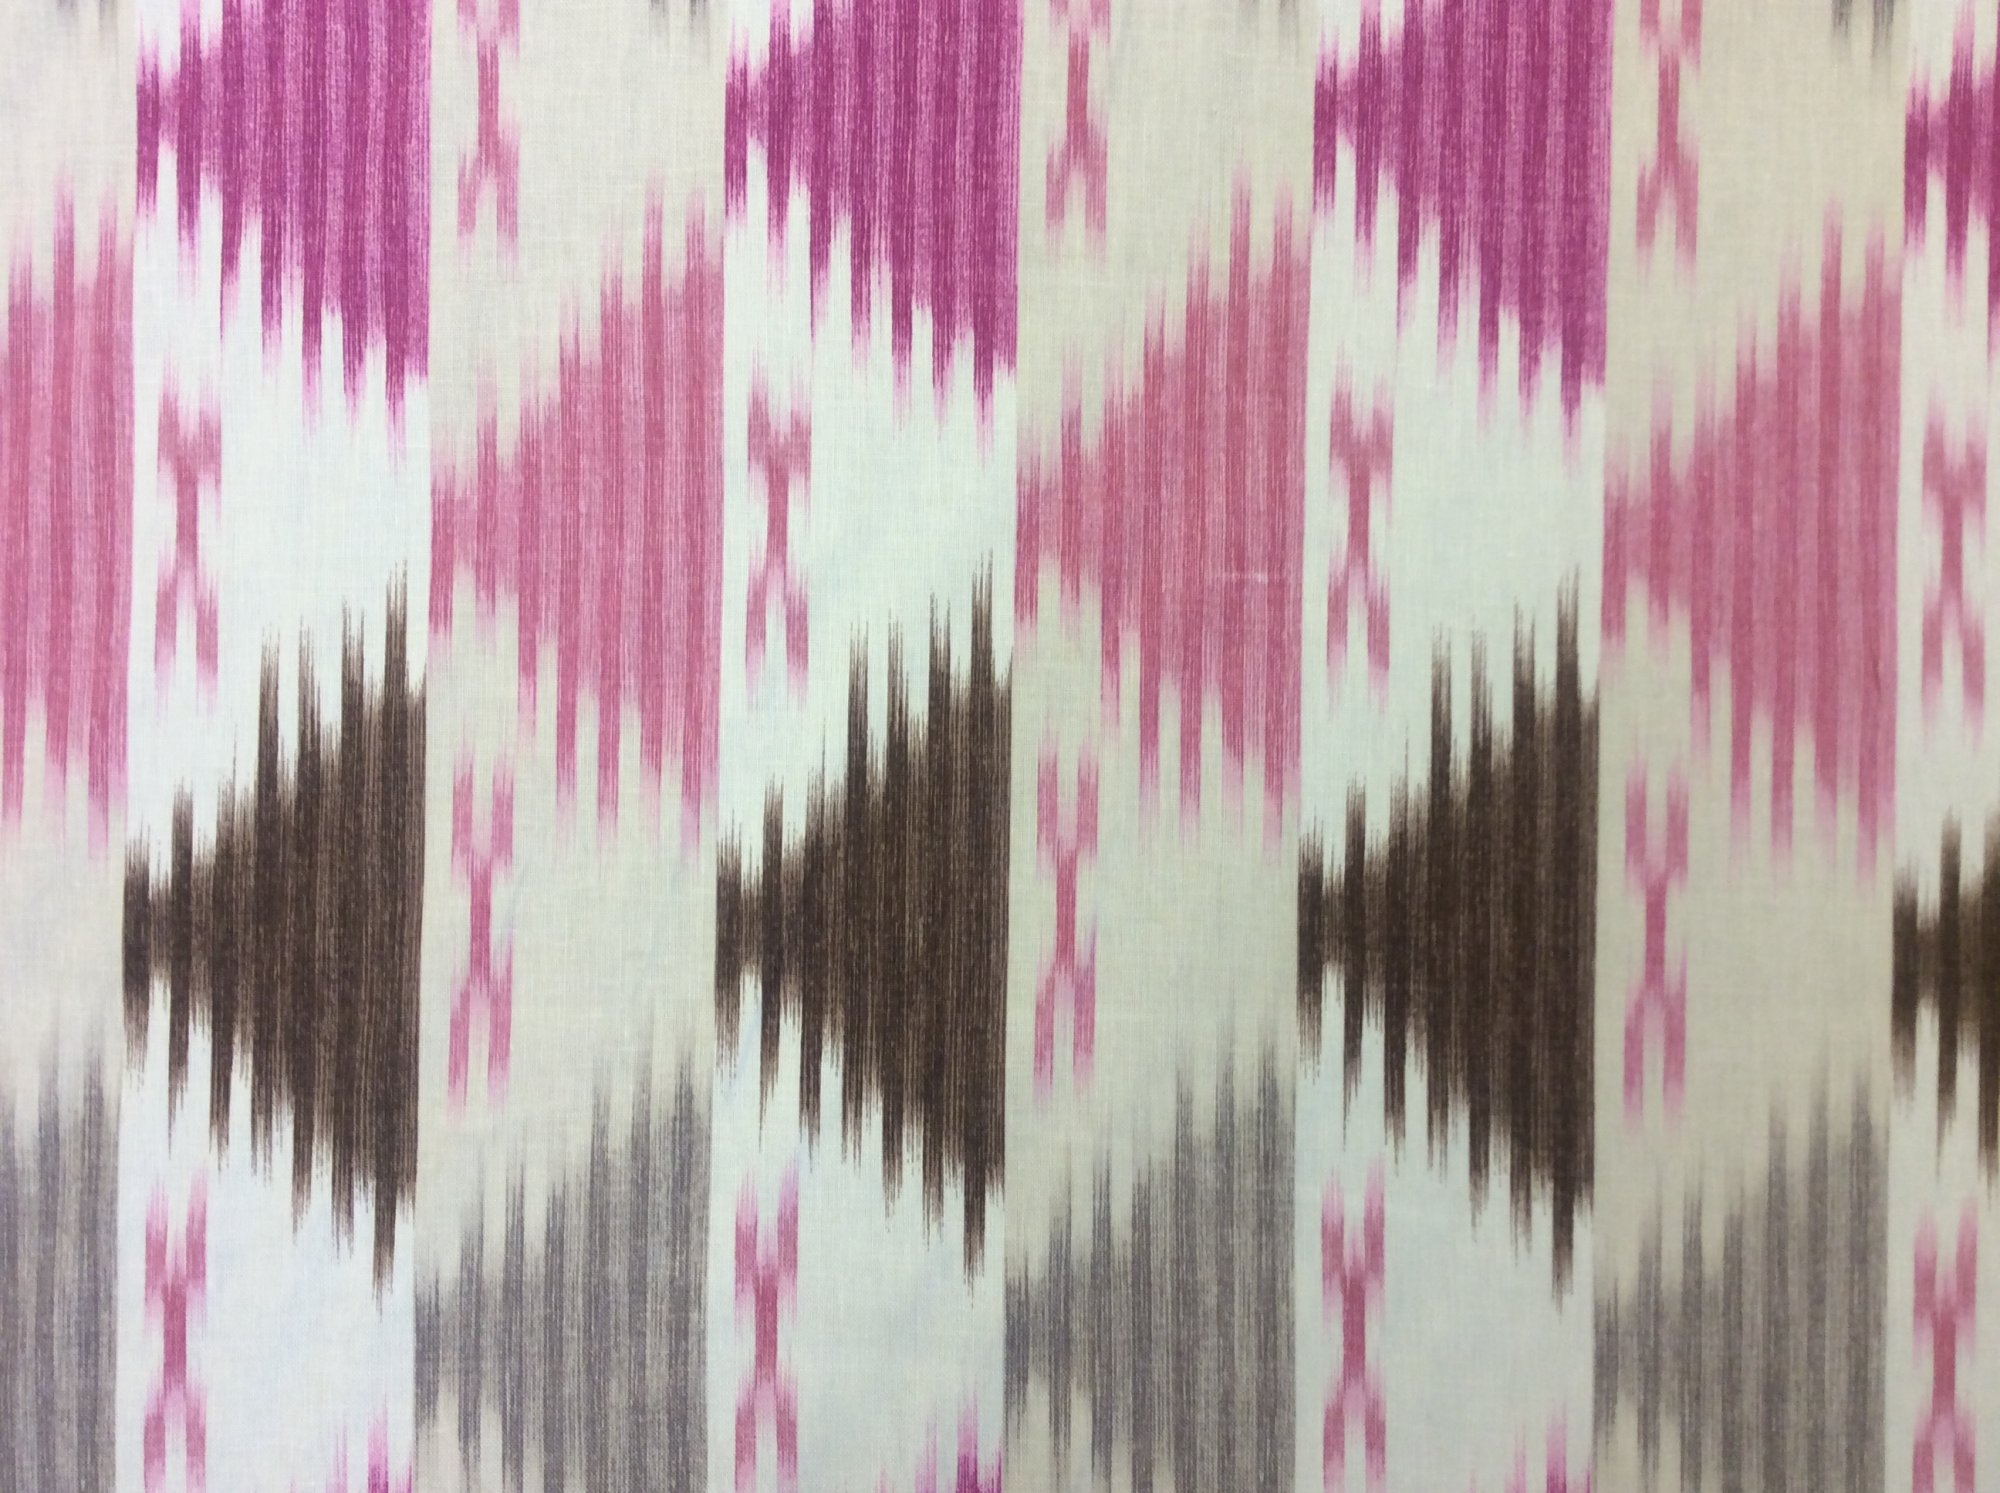 6 Yard Bolt! OR117 Printed Ikat Stripe Geometric By the Yard Upholstery Home Decor Fabric